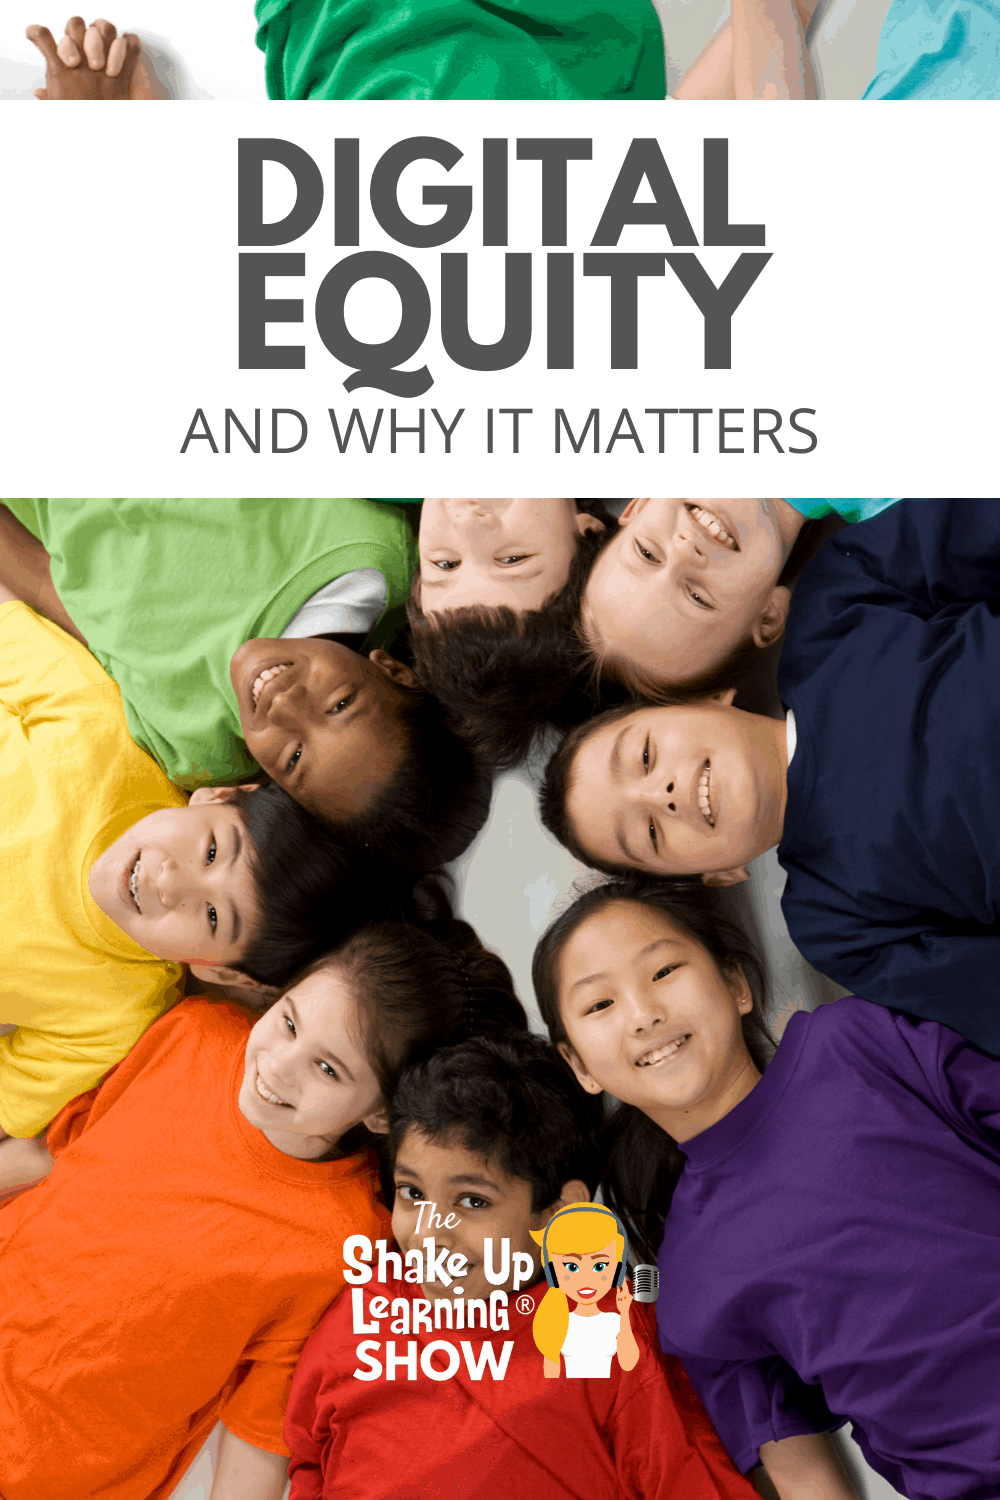 Digital Equity and Why It Matters [interview with Ken Shelton] - SULS051